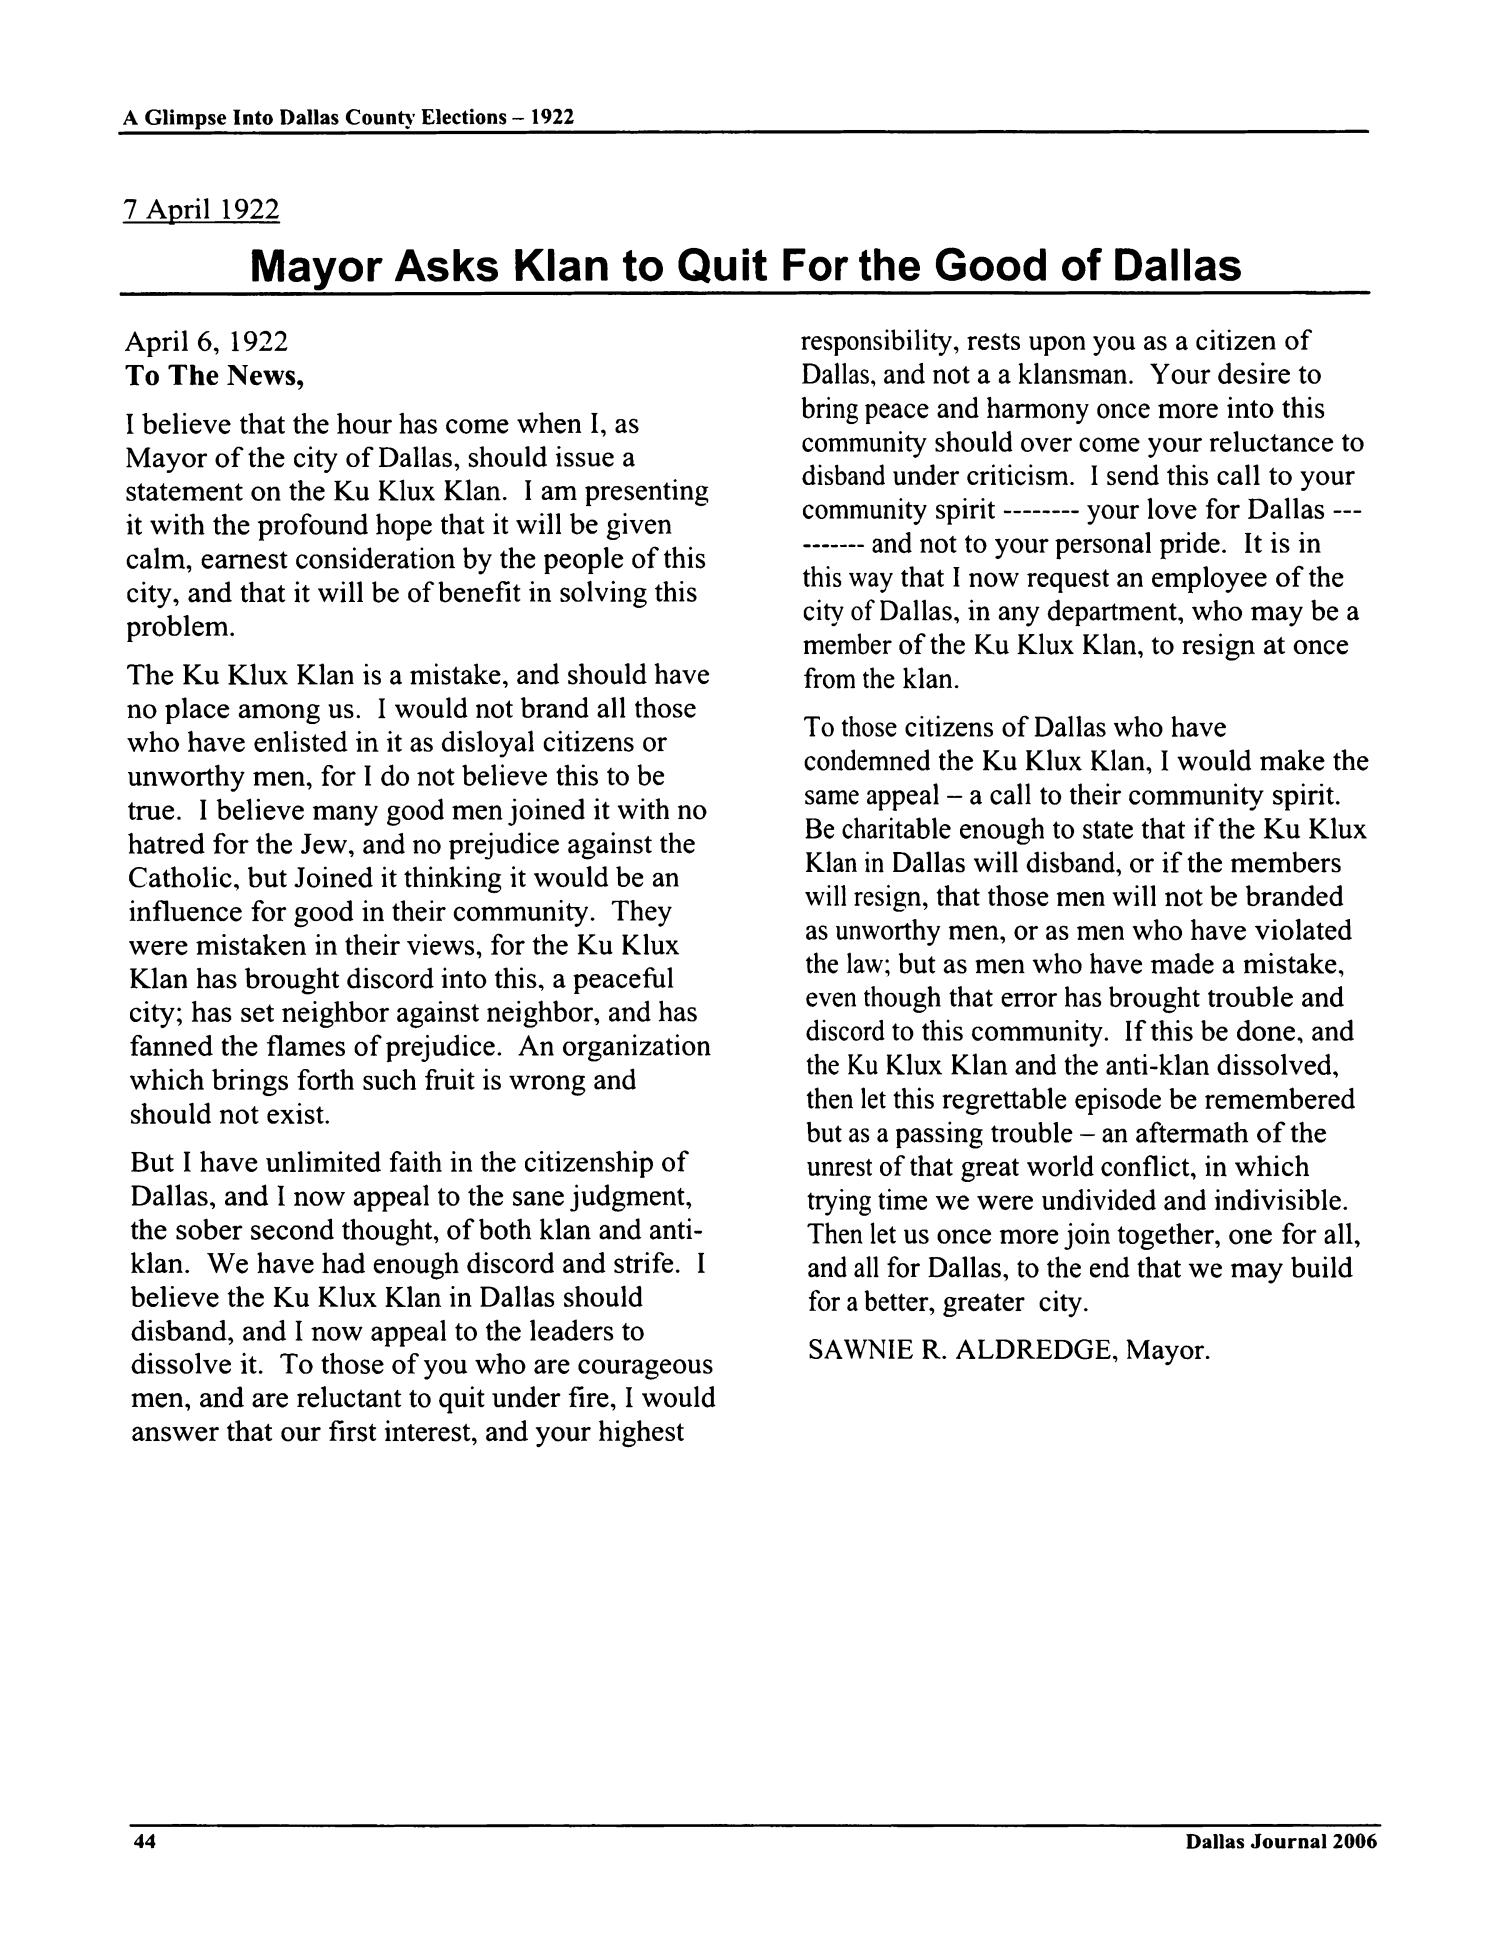 The Dallas Journal, Volume 51, 2006                                                                                                      44